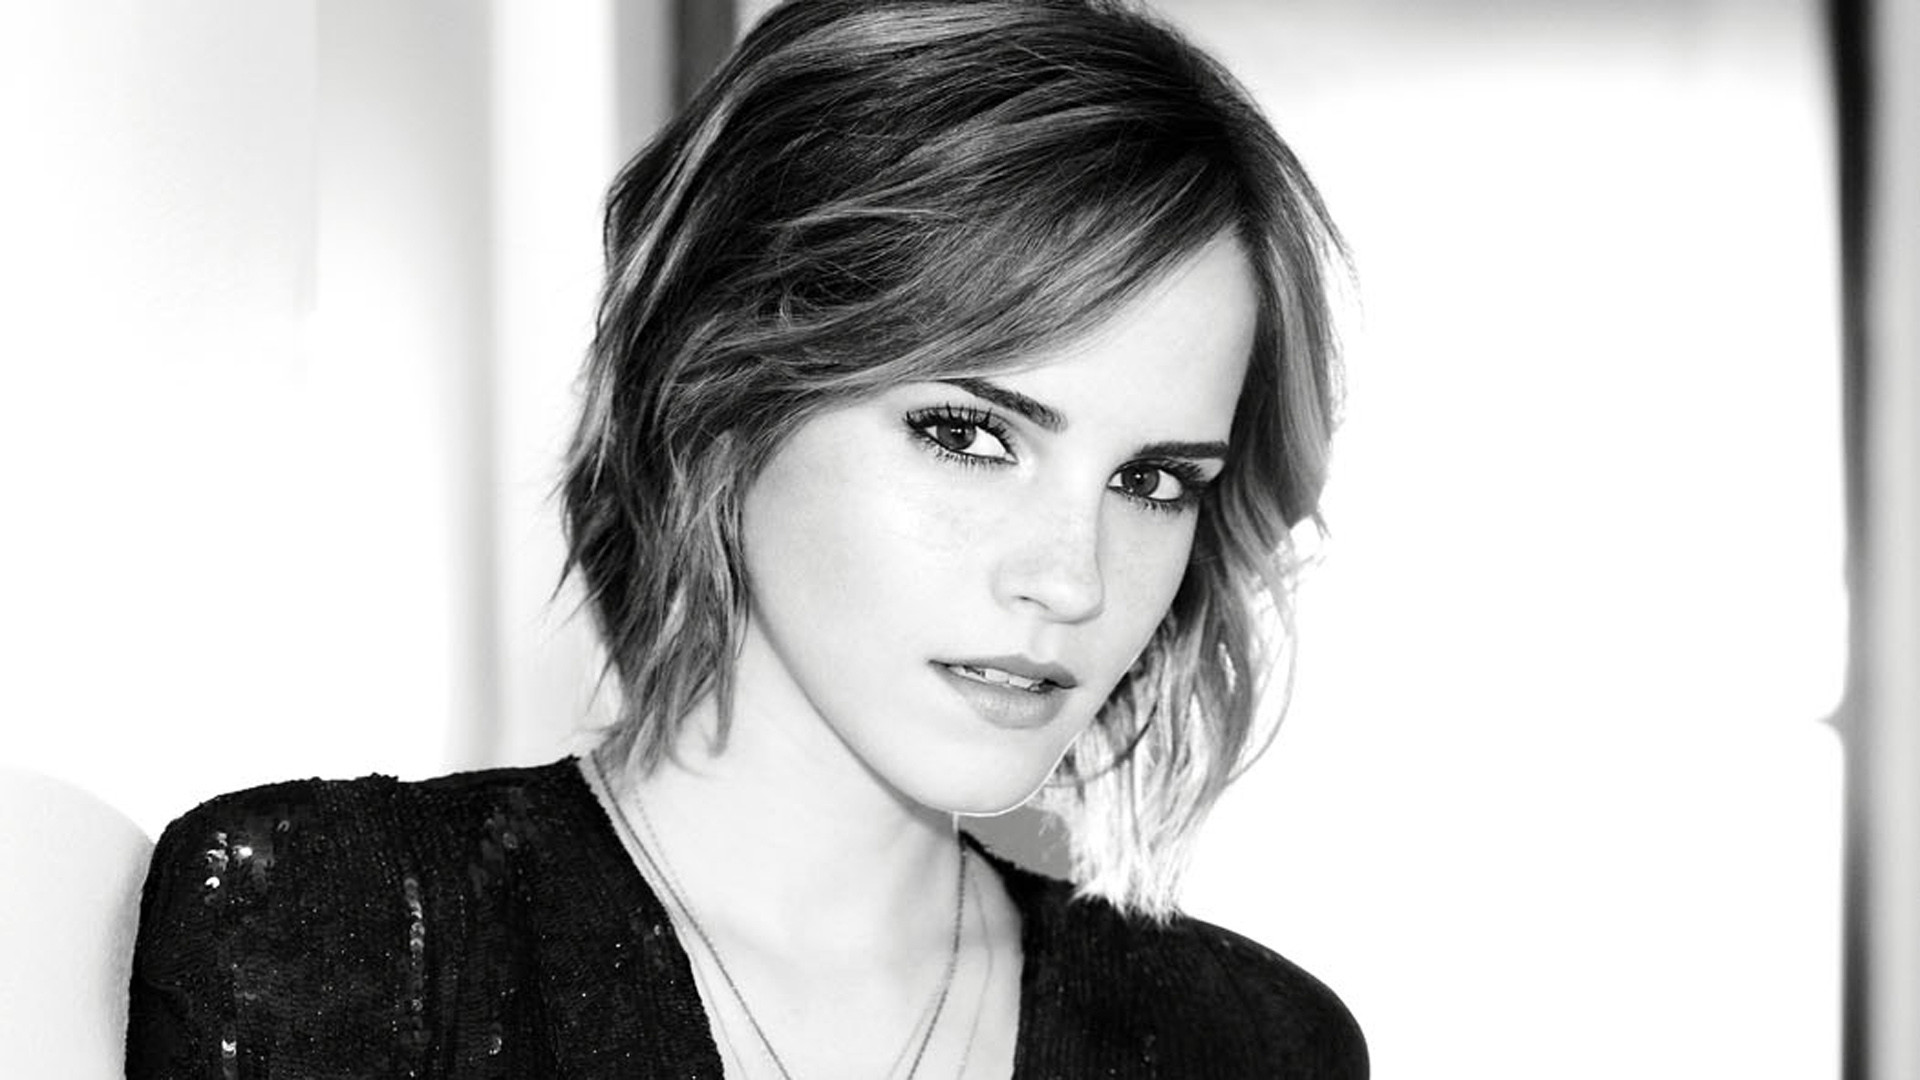 1920x1080 Emma Watson Wallpapers Celebrities HD Wallpapers Page